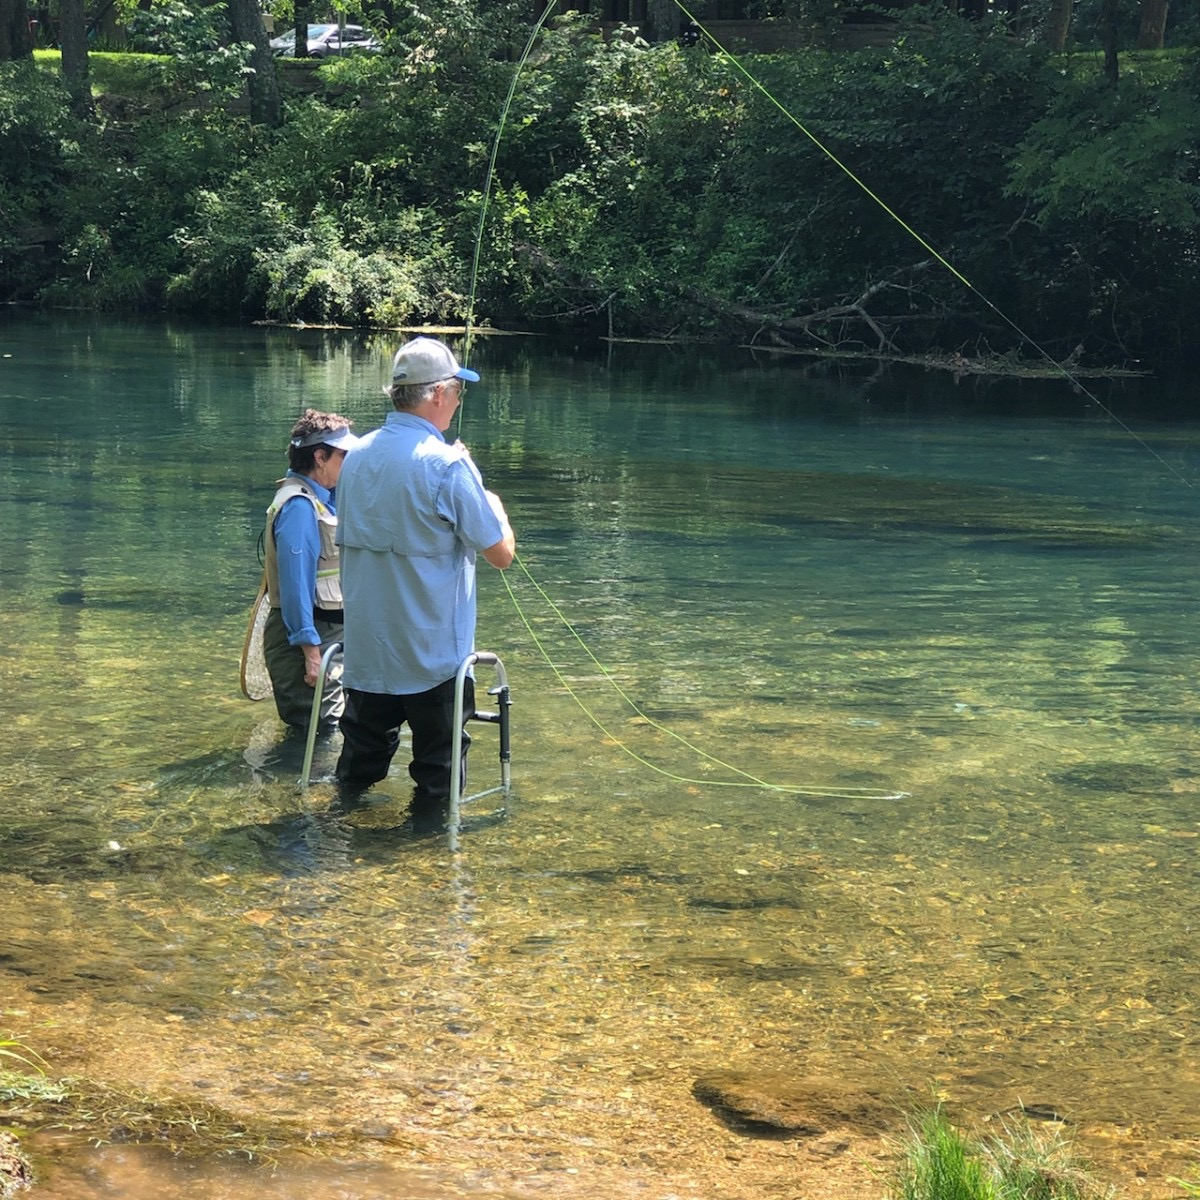 Pat and Janelle Carey fly fishing in the river